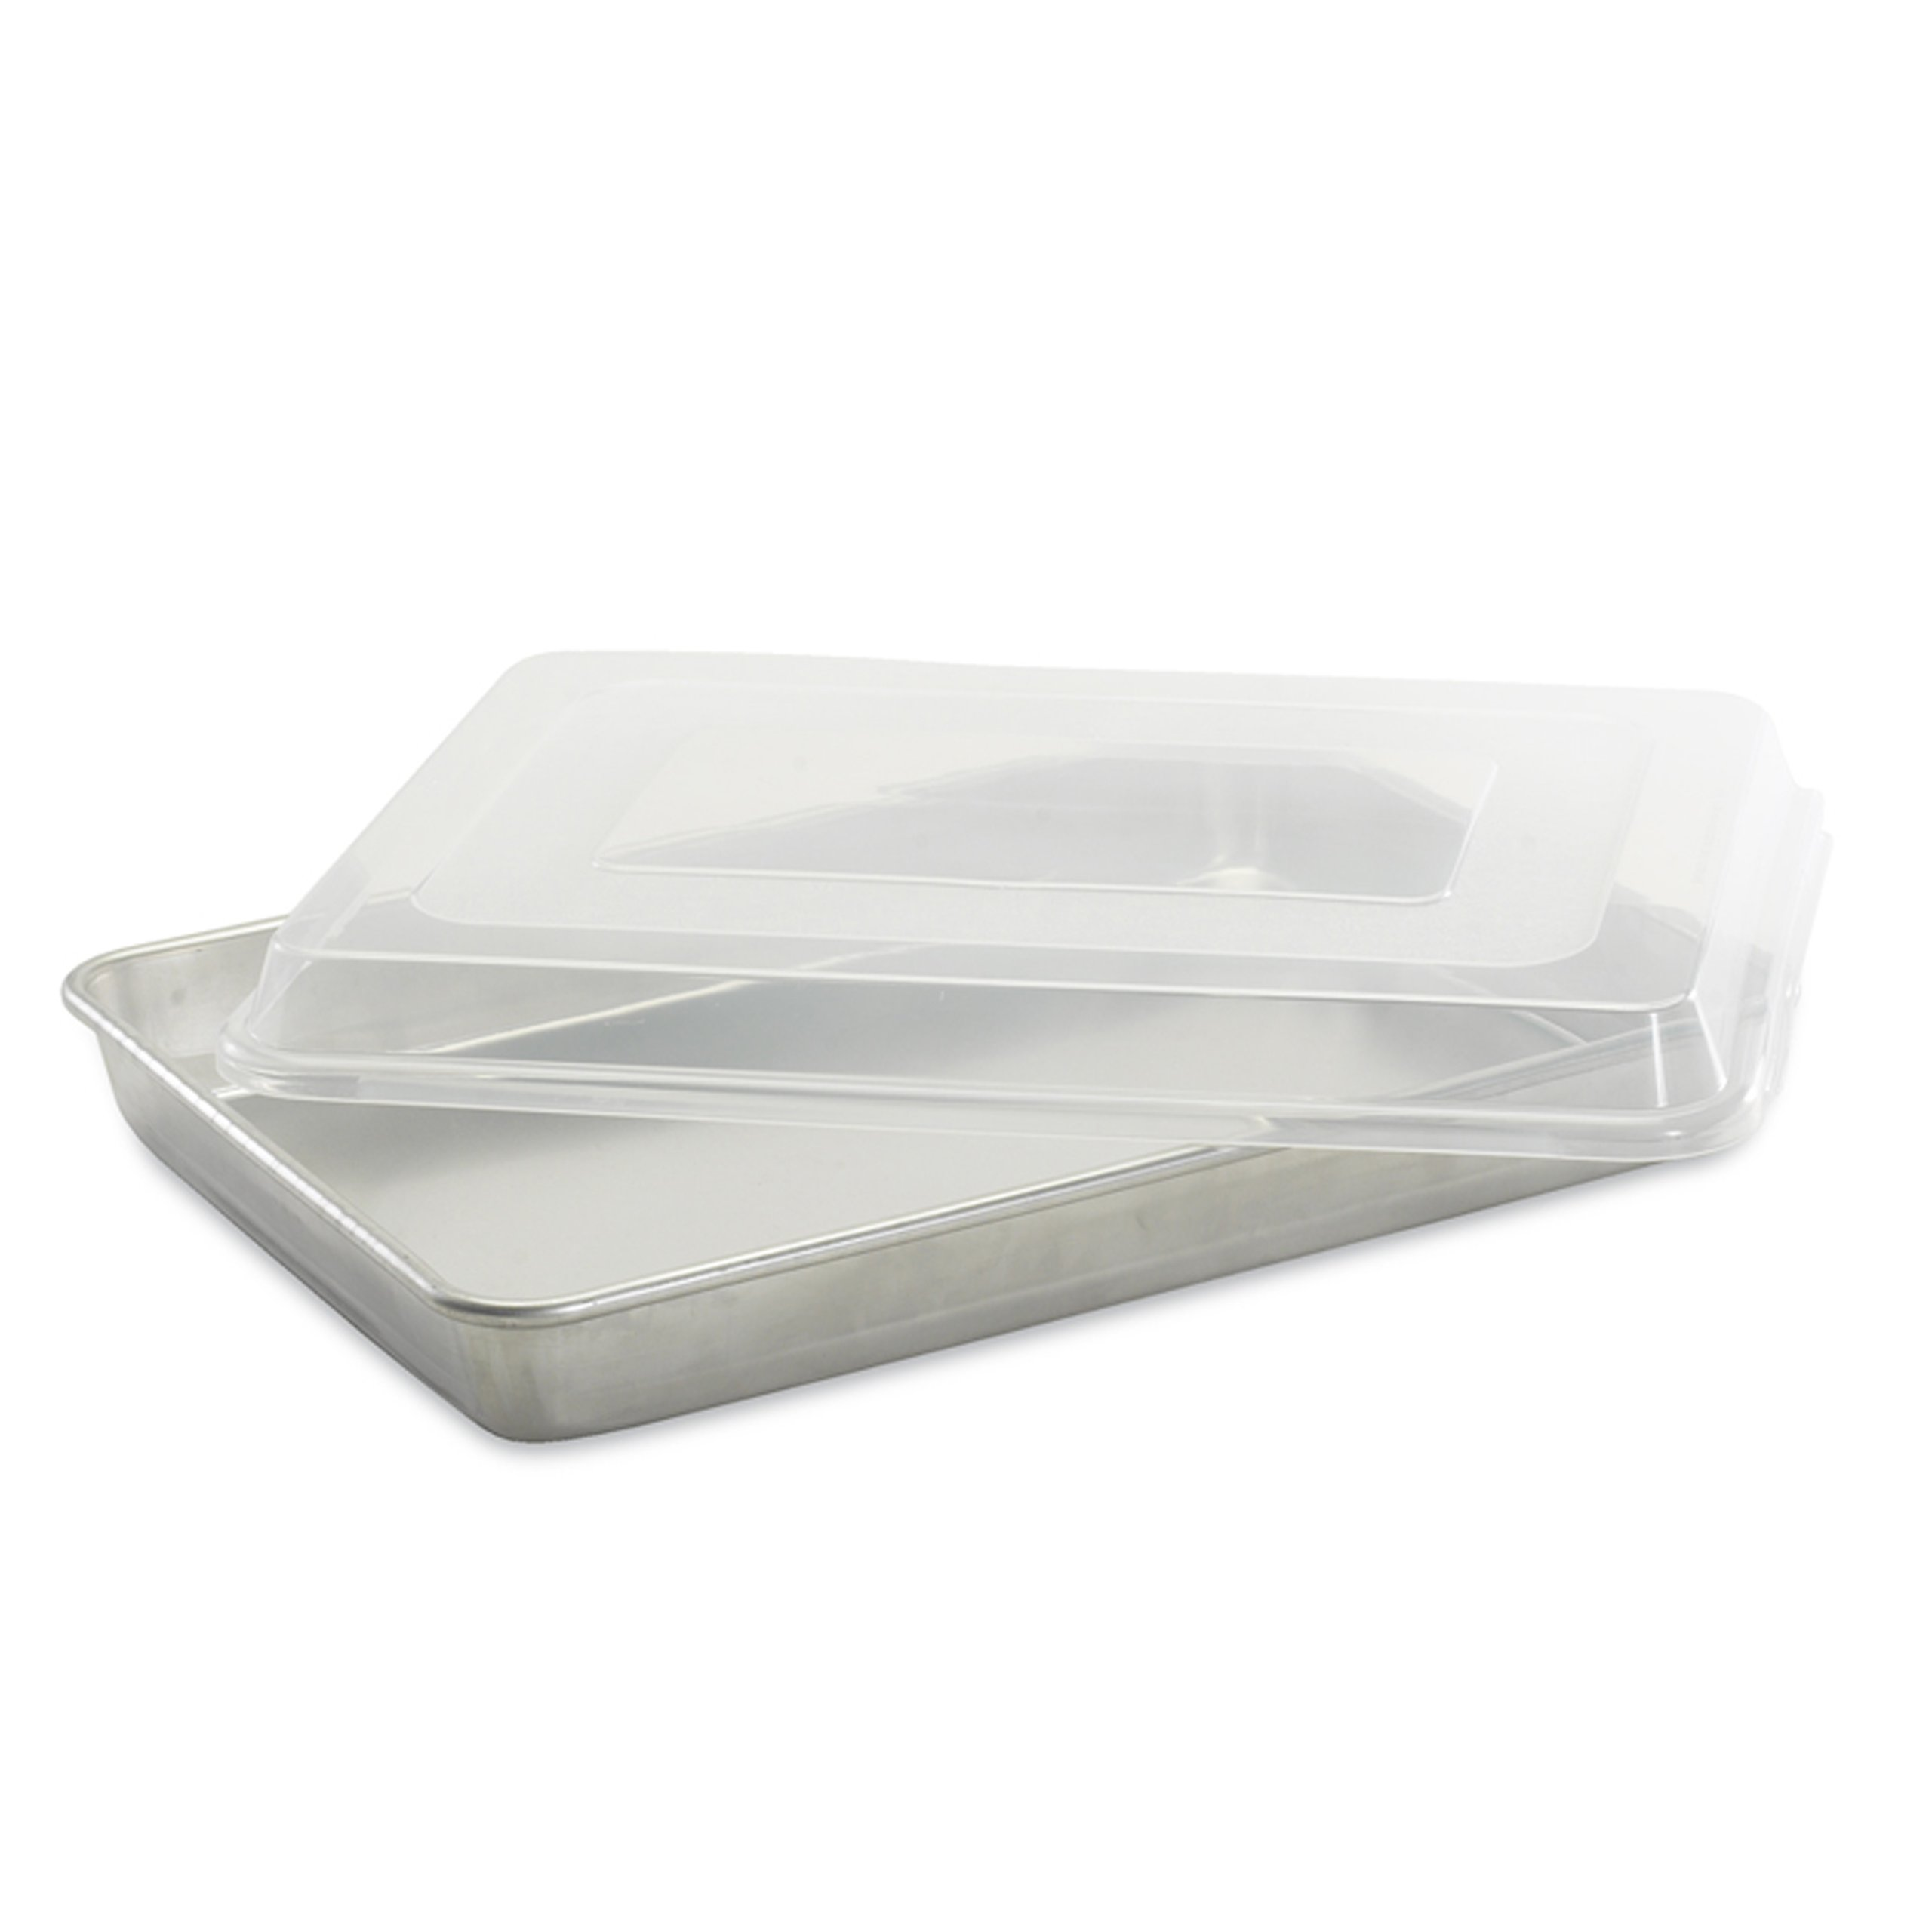 Nordic Ware Natural Aluminum Commercial High-Sided Sheet Cake Pan with Lid by Nordic Ware